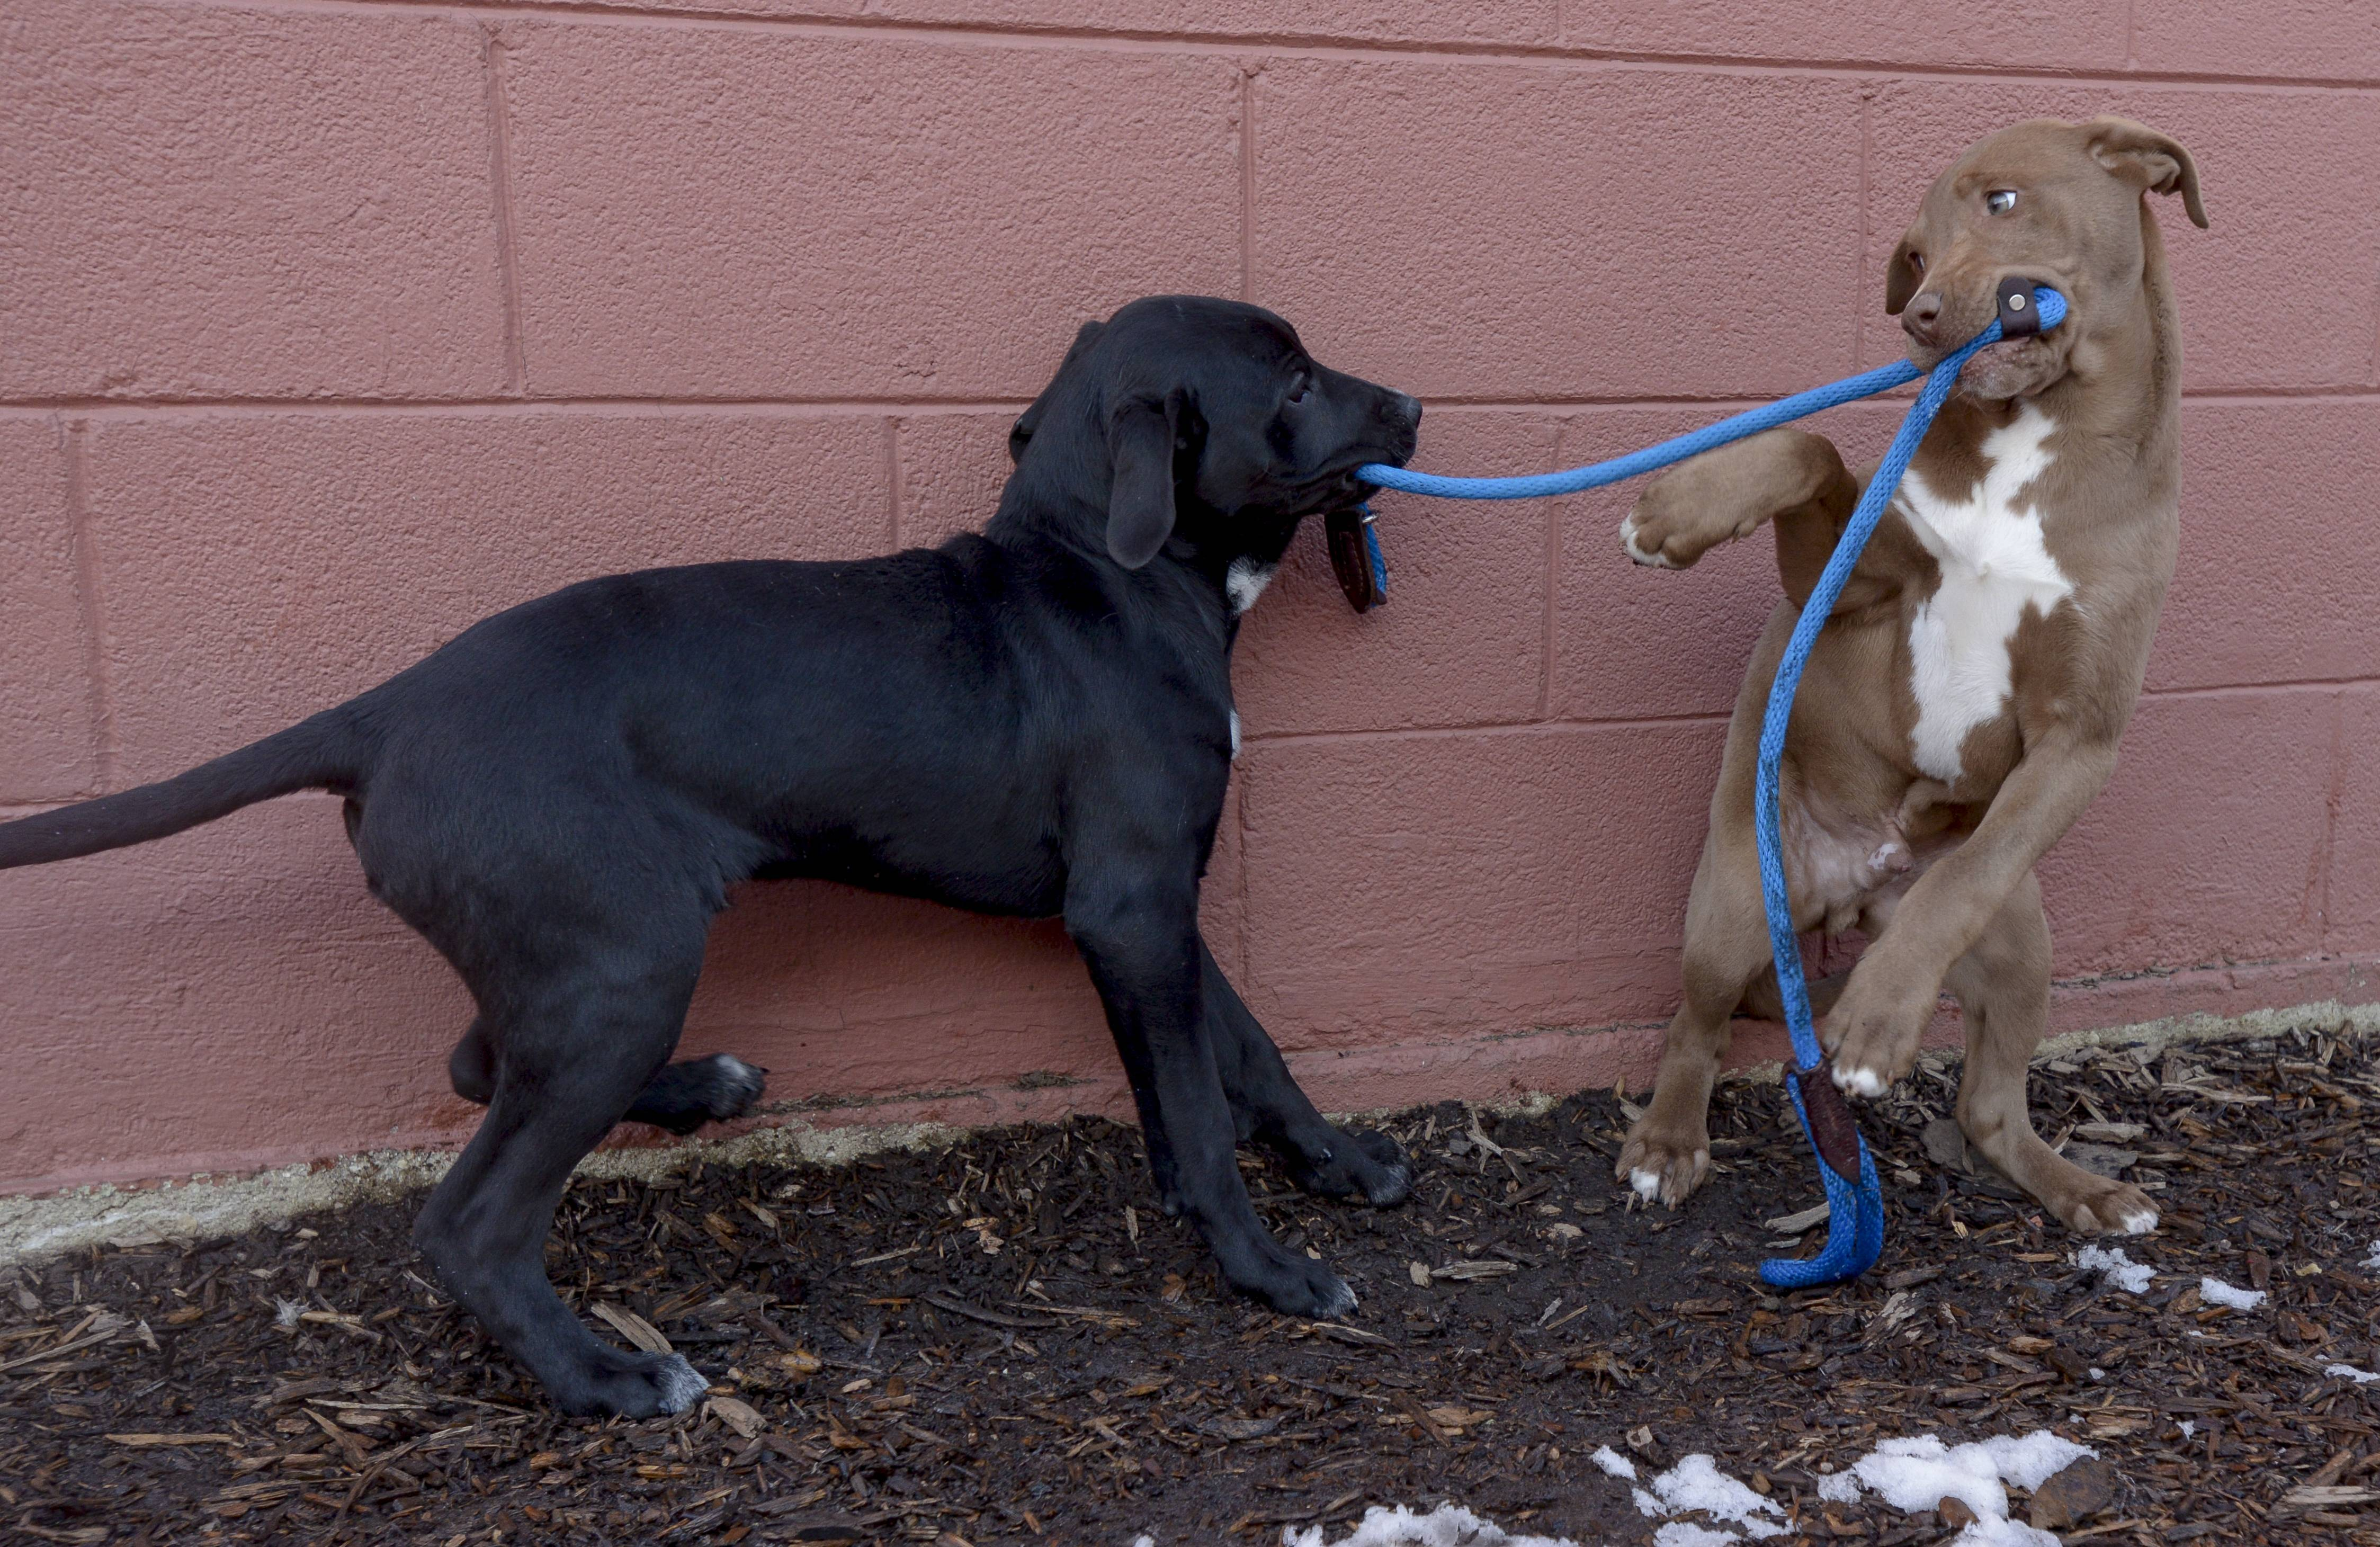 Rescue puppies play in the dog run at the Dog Patch in Naperville, which offers rescued dogs and cats for adoption. Animal welfare groups are hoping suburban communities follow Chicago's lead and ban the sale of dogs from for-profit breeders.